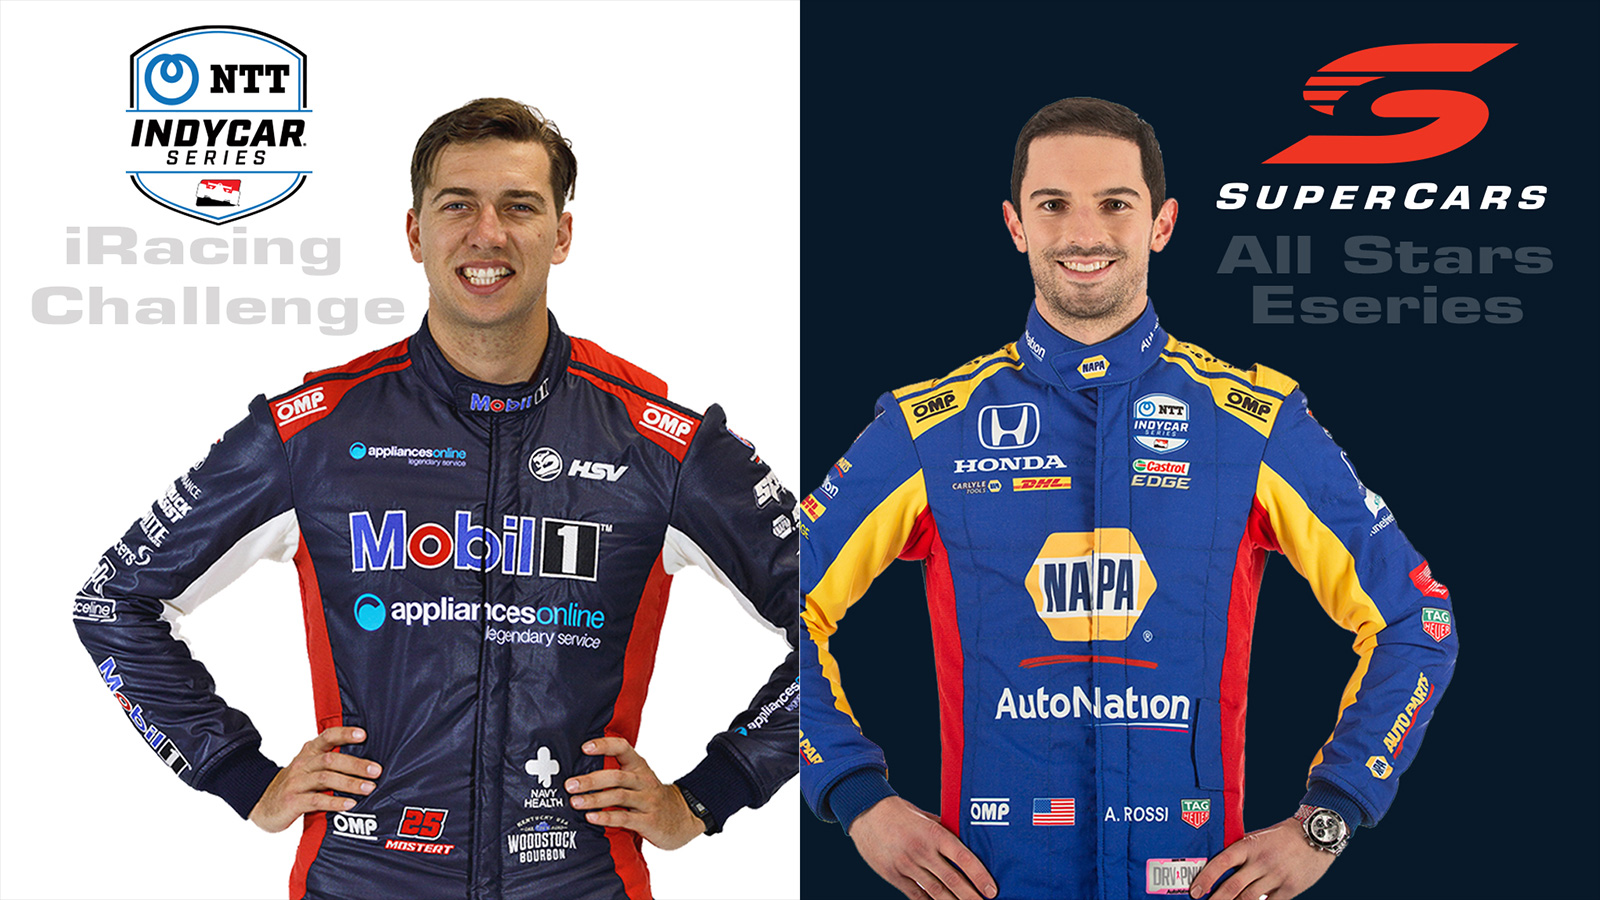 Mostert to INDYCAR, Rossi to Supercars